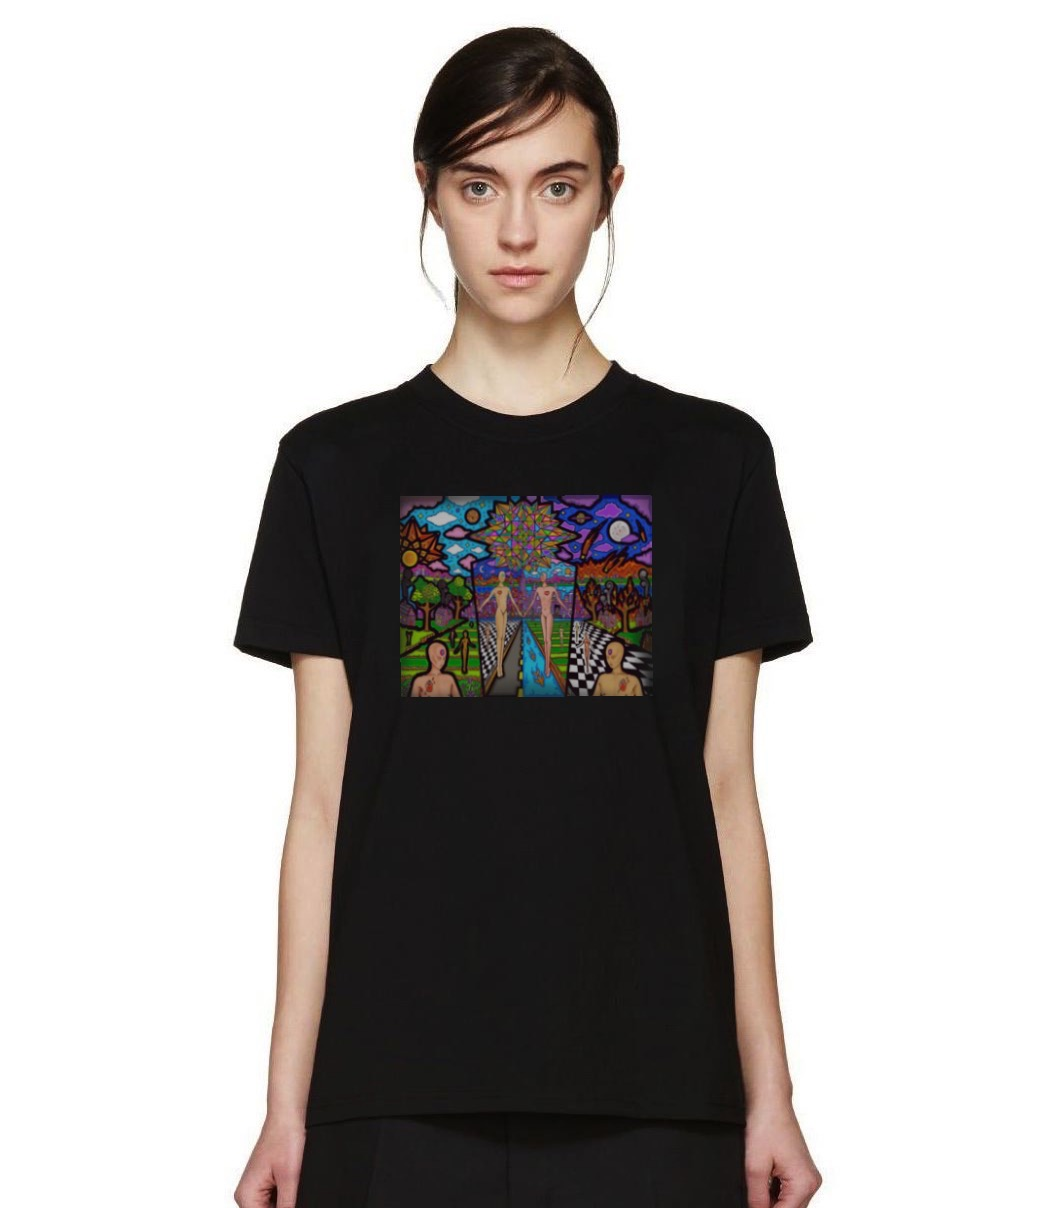 15-Off-White-Women-s-Black-Embroidered-T-Shirt-1 copy 16.jpg